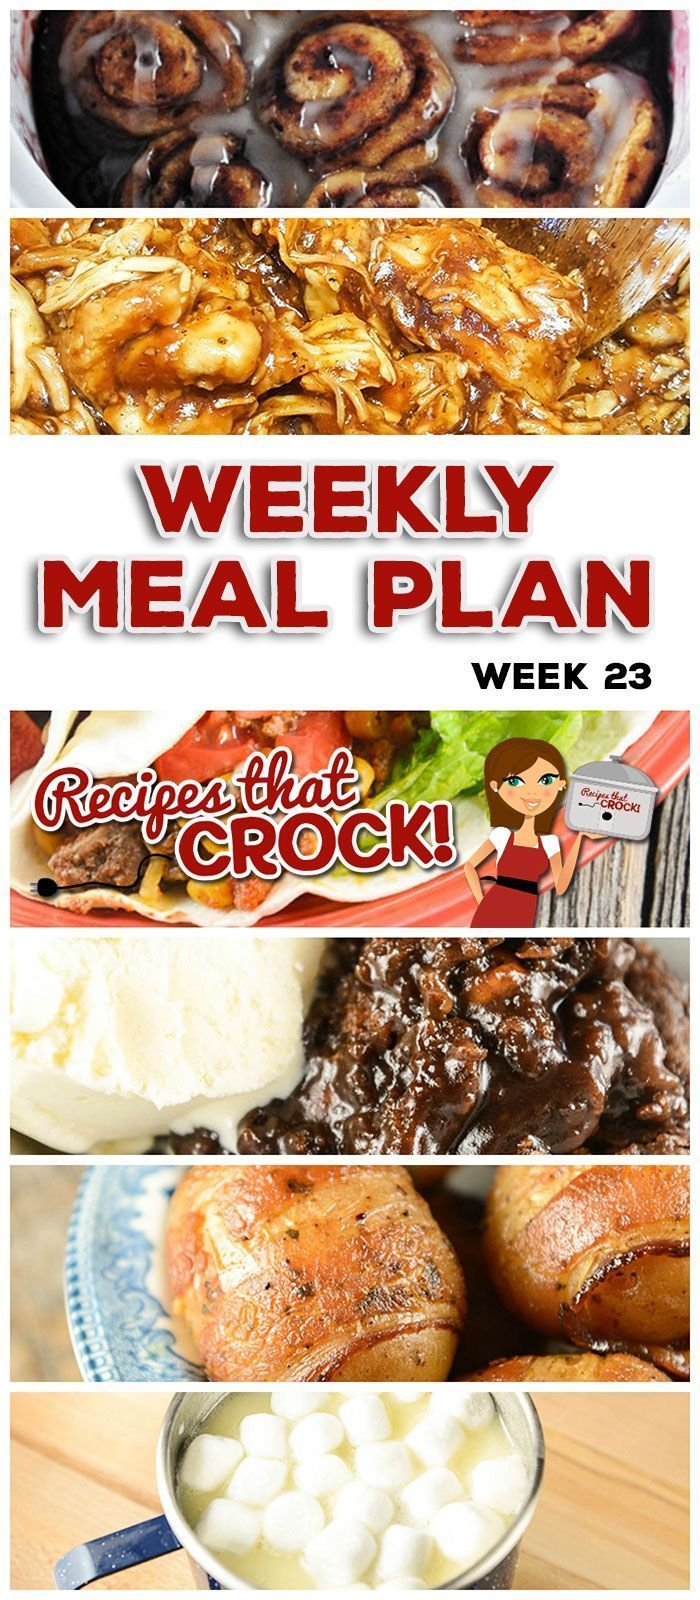 This week's weekly menu features Crock Pot Cinnamon Roll Mixed Berry Casserole, Crock Pot Hot Fudge Peanut Butter Cake, Crock Pot Hot White Chocolate, Crock Pot Creole Pork Chops, Crock Pot Bacon Taters, Crock Pot Beefy Tex Mex Tacos, Crock Pot Tuscan Bean Soup, Crock Pot Quick & Easy BBQ Chicken and Crock Pot Seafood Gumbo. #crockpotgumbo This week's weekly menu features Crock Pot Cinnamon Roll Mixed Berry Casserole, Crock Pot Hot Fudge Peanut Butter Cake, Crock Pot Hot White Chocolate, Crock P #crockpotgumbo